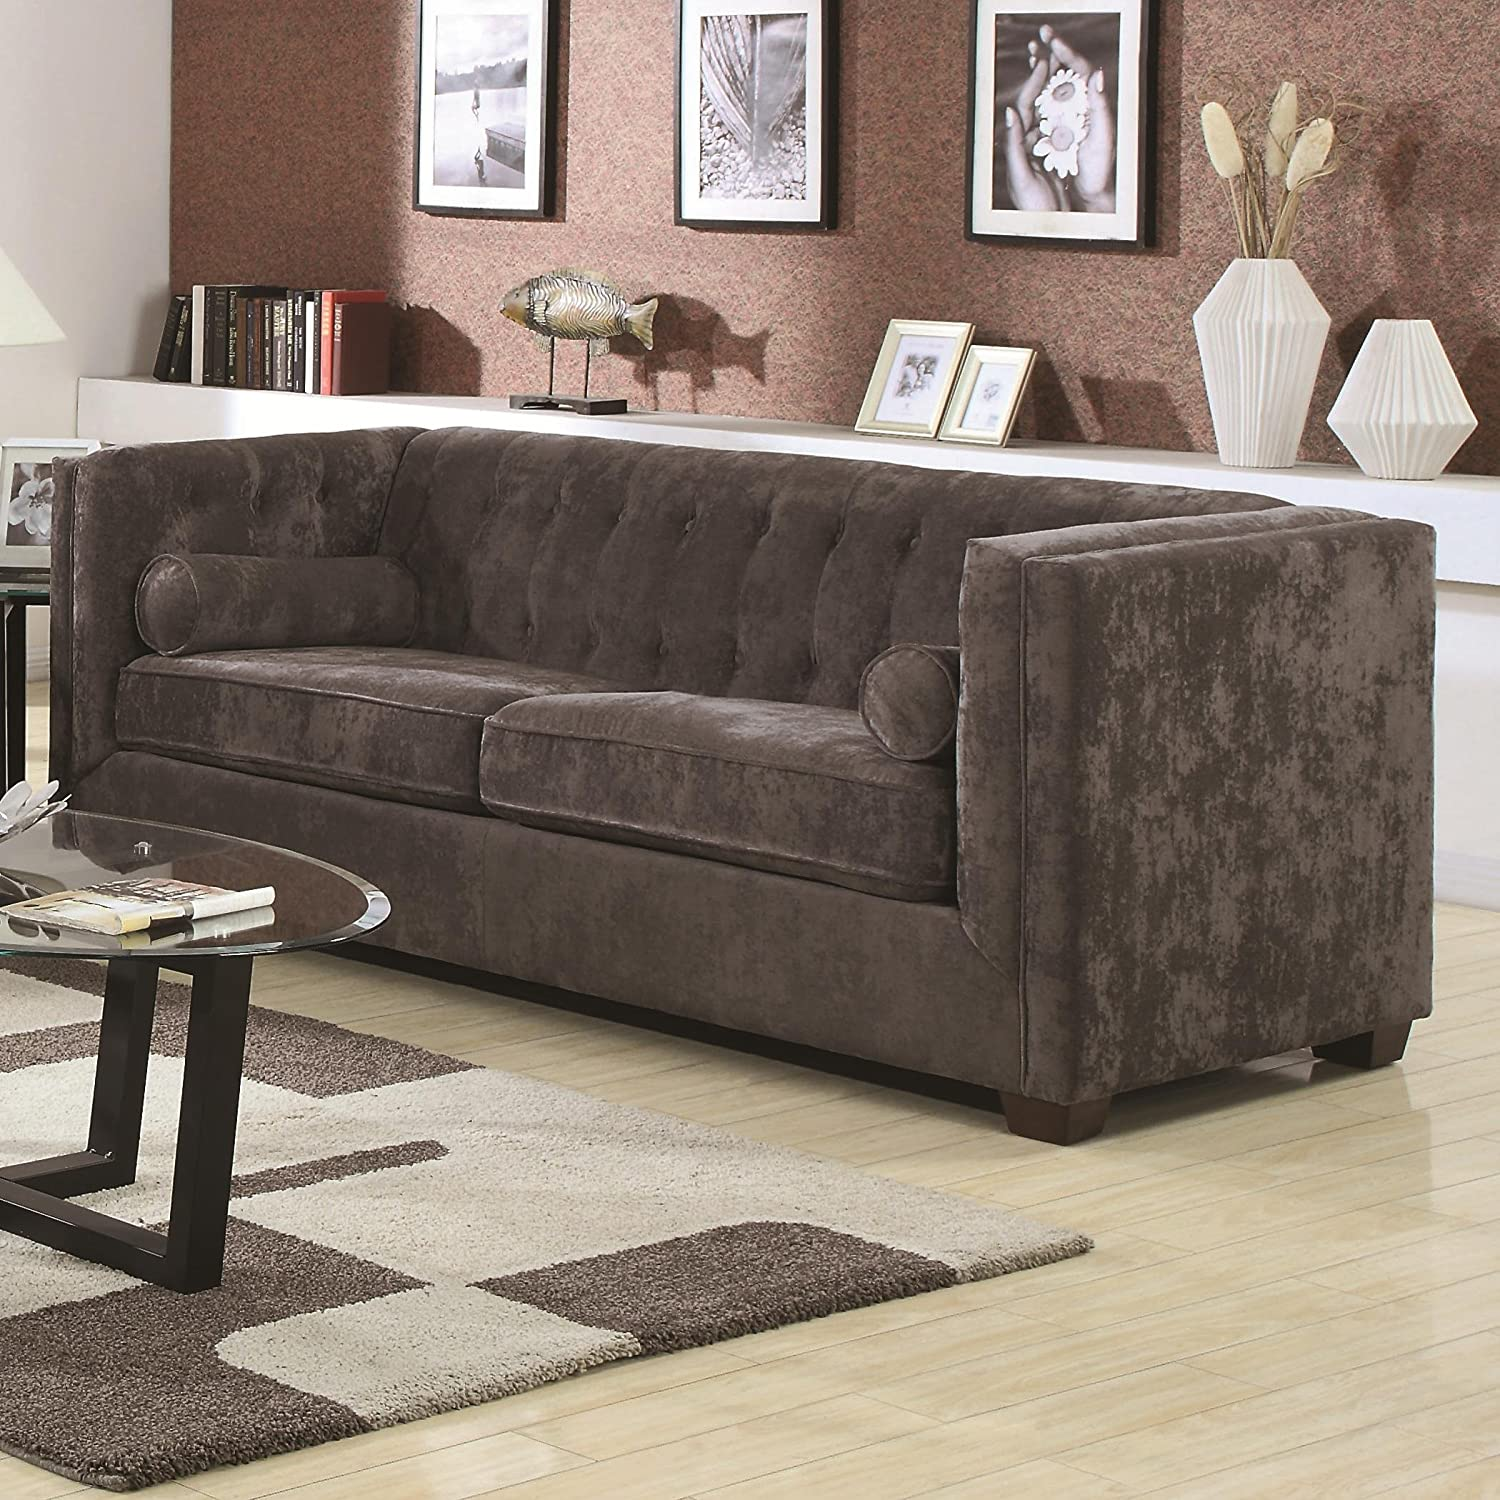 Amazon Coaster Alexis Collection Sofa Couch in Almond